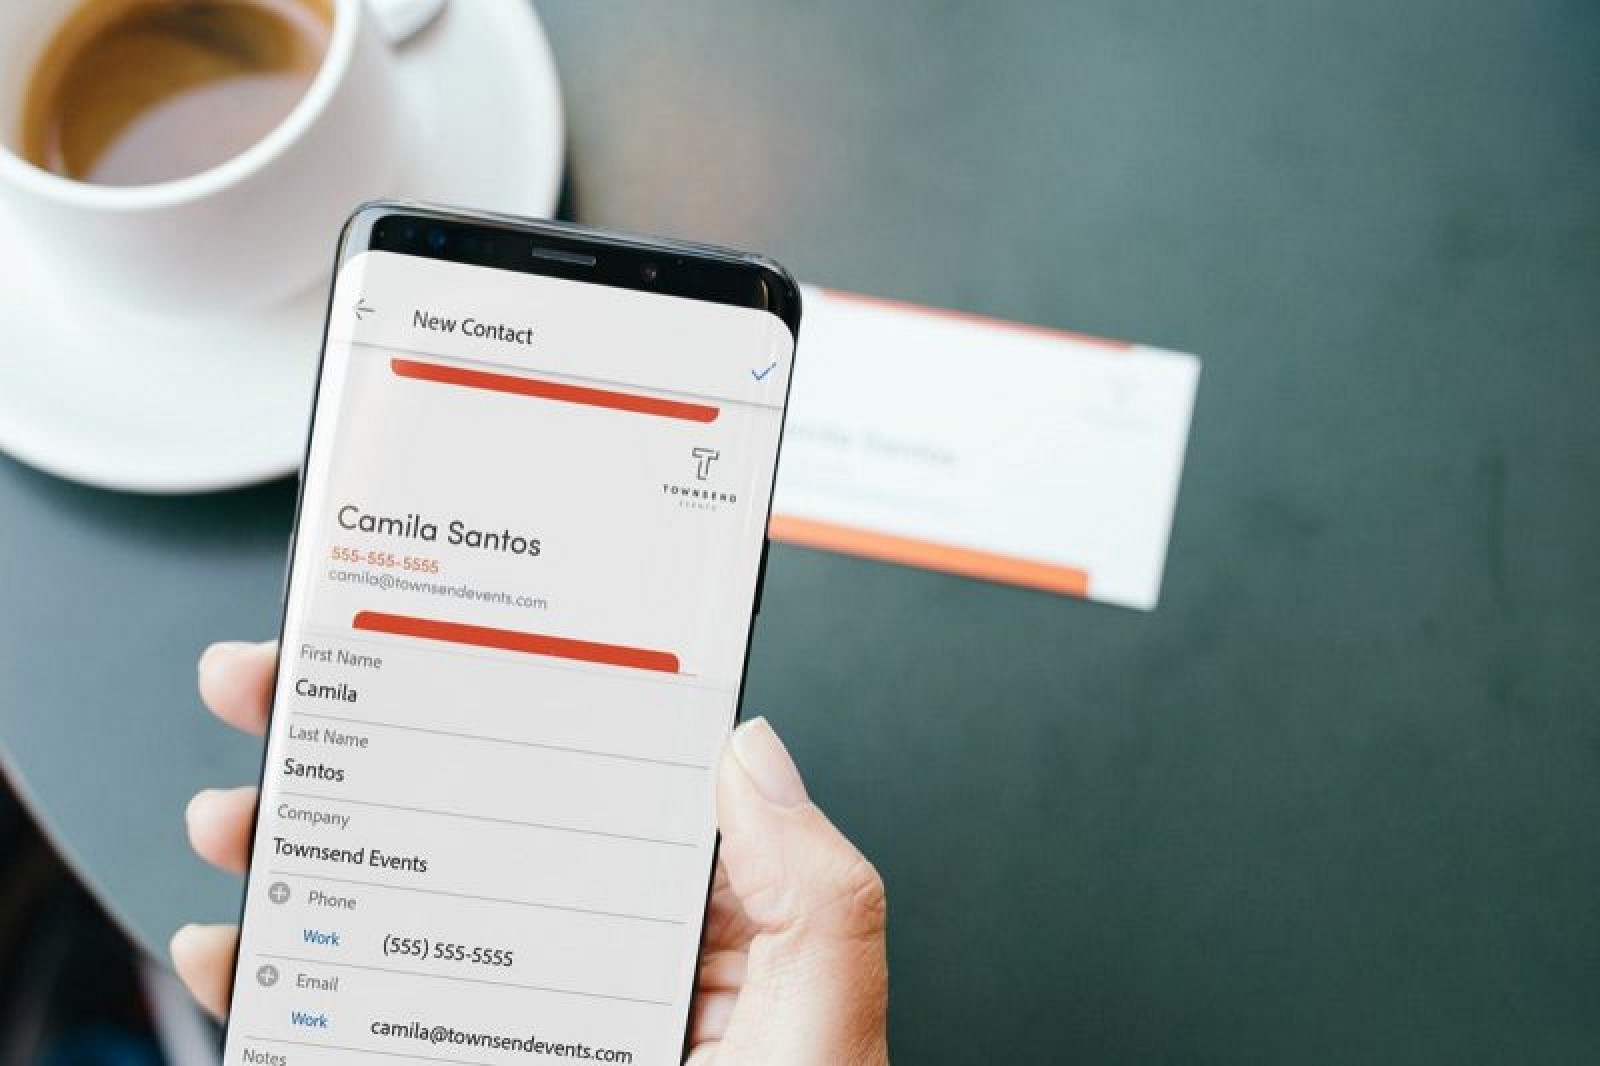 adobe scan app's latest ai feature converts business cards